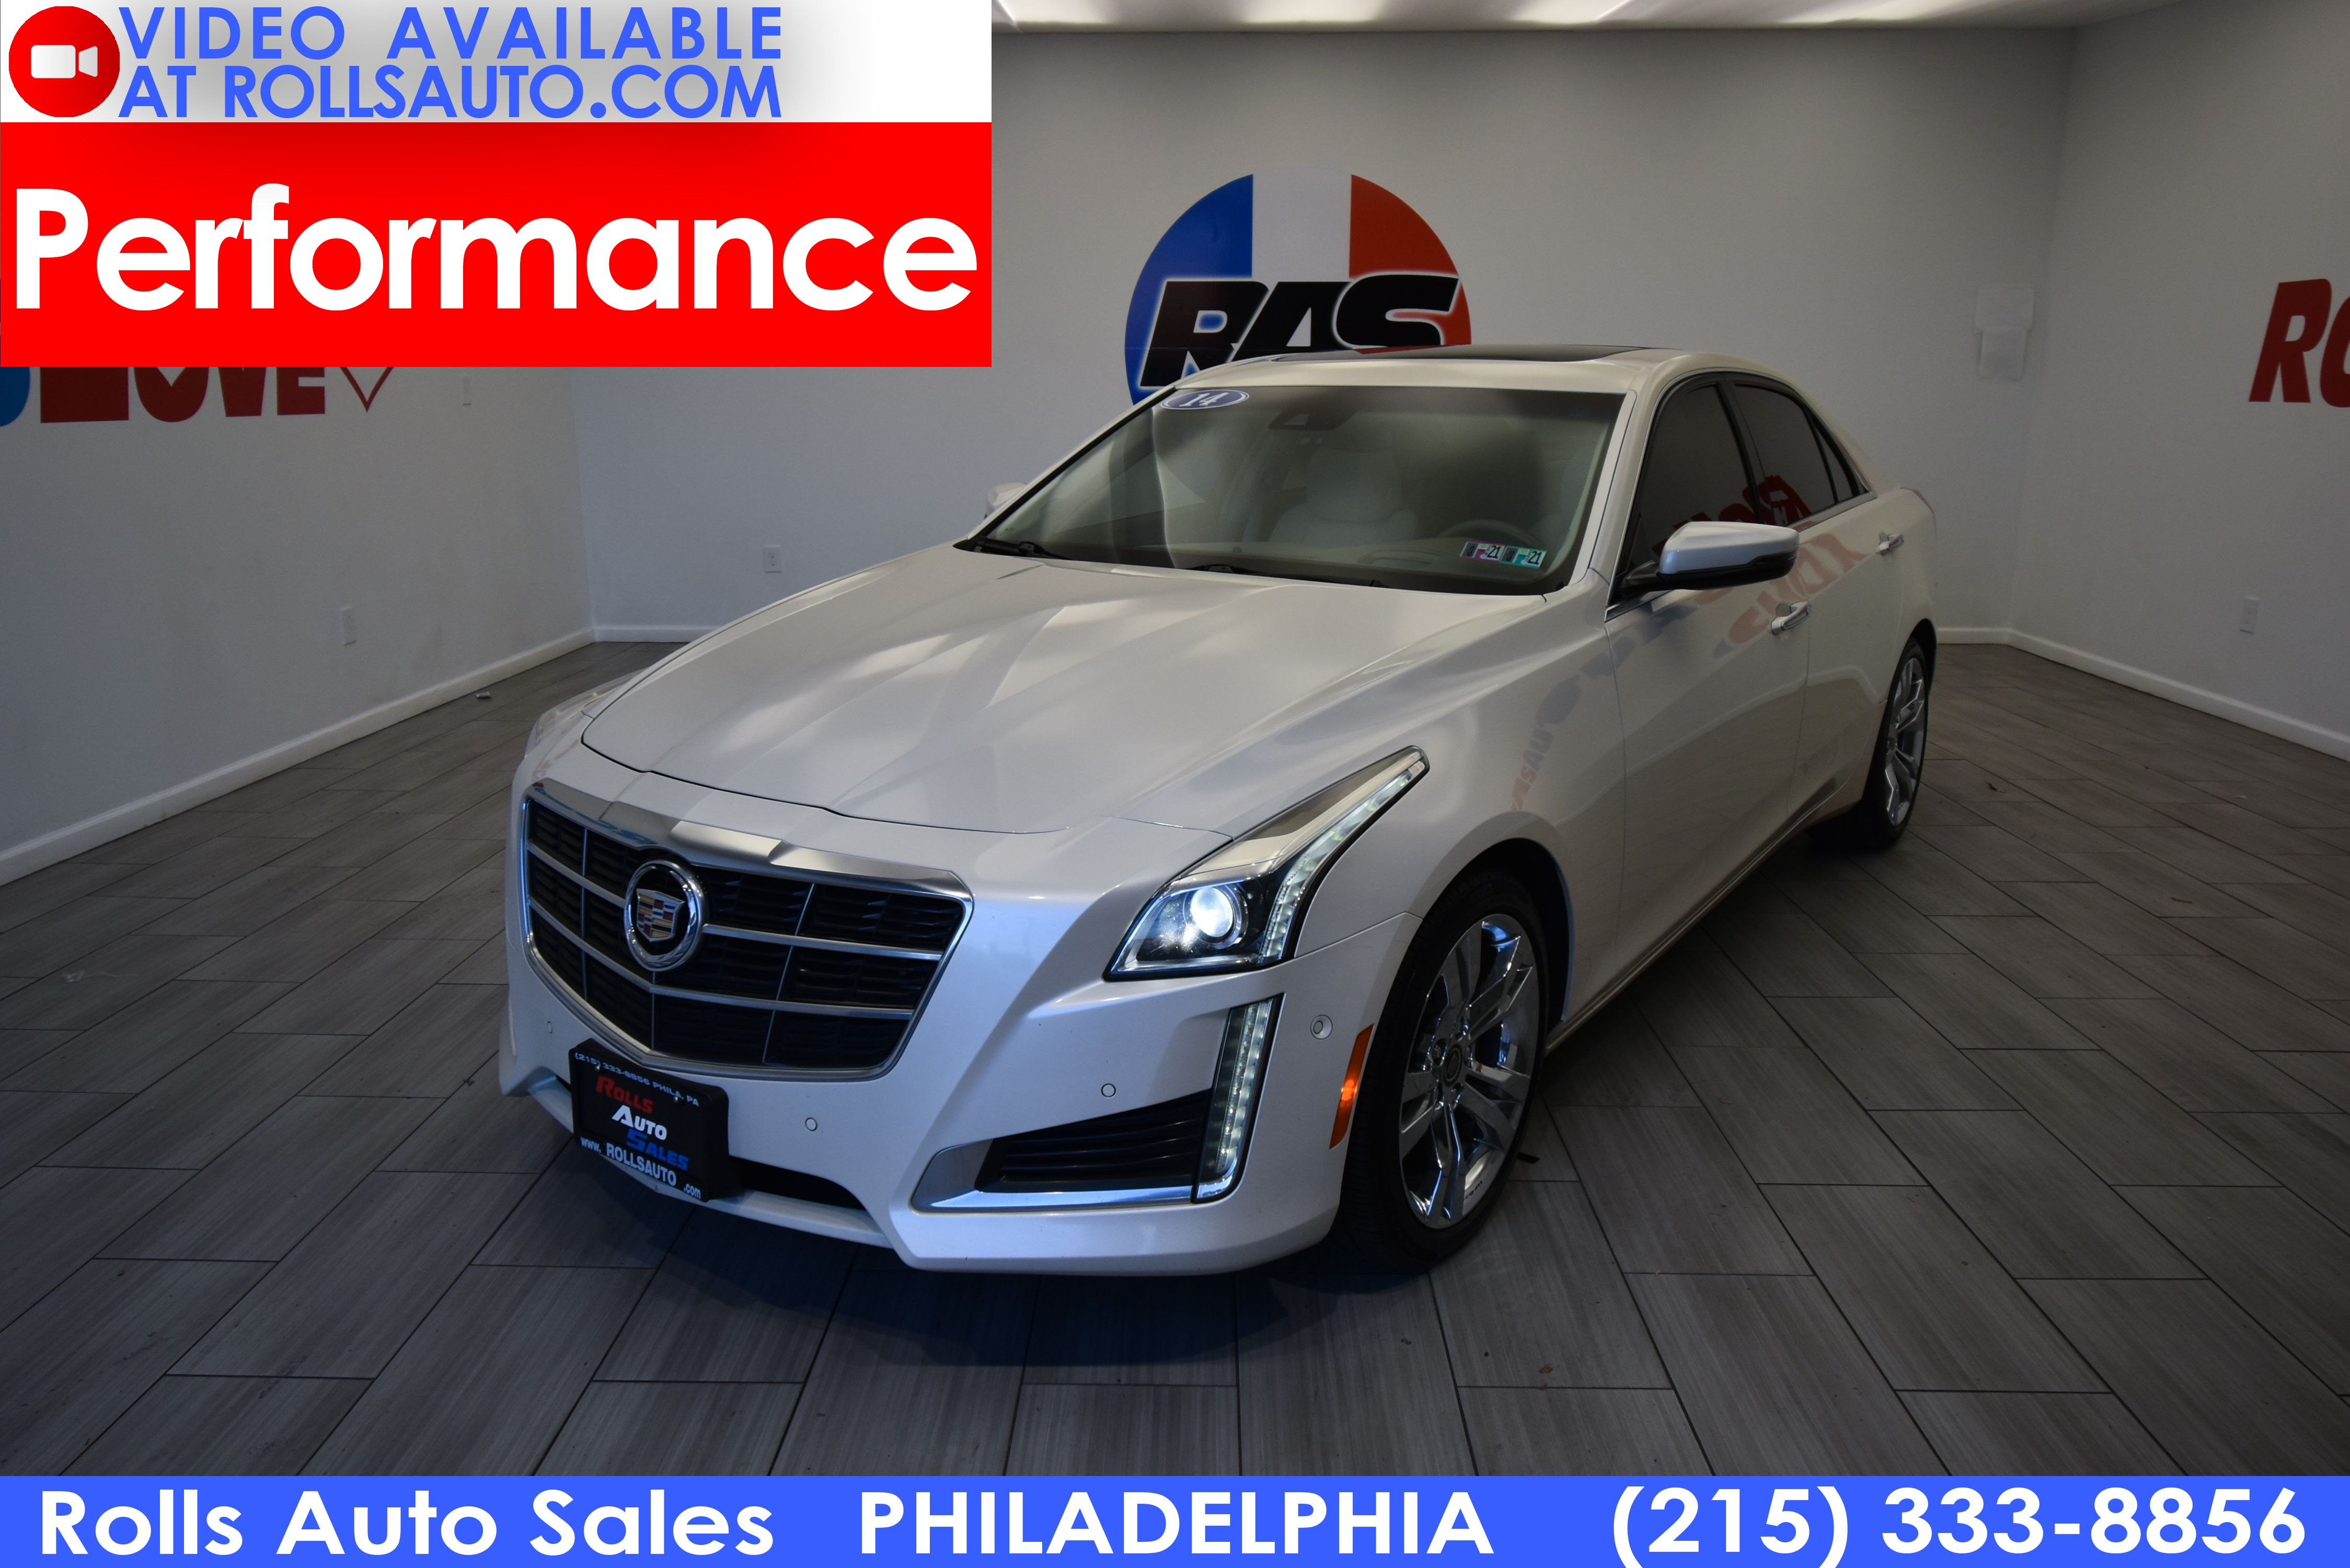 Pre-Owned 2014 Cadillac CTS Performance RWD